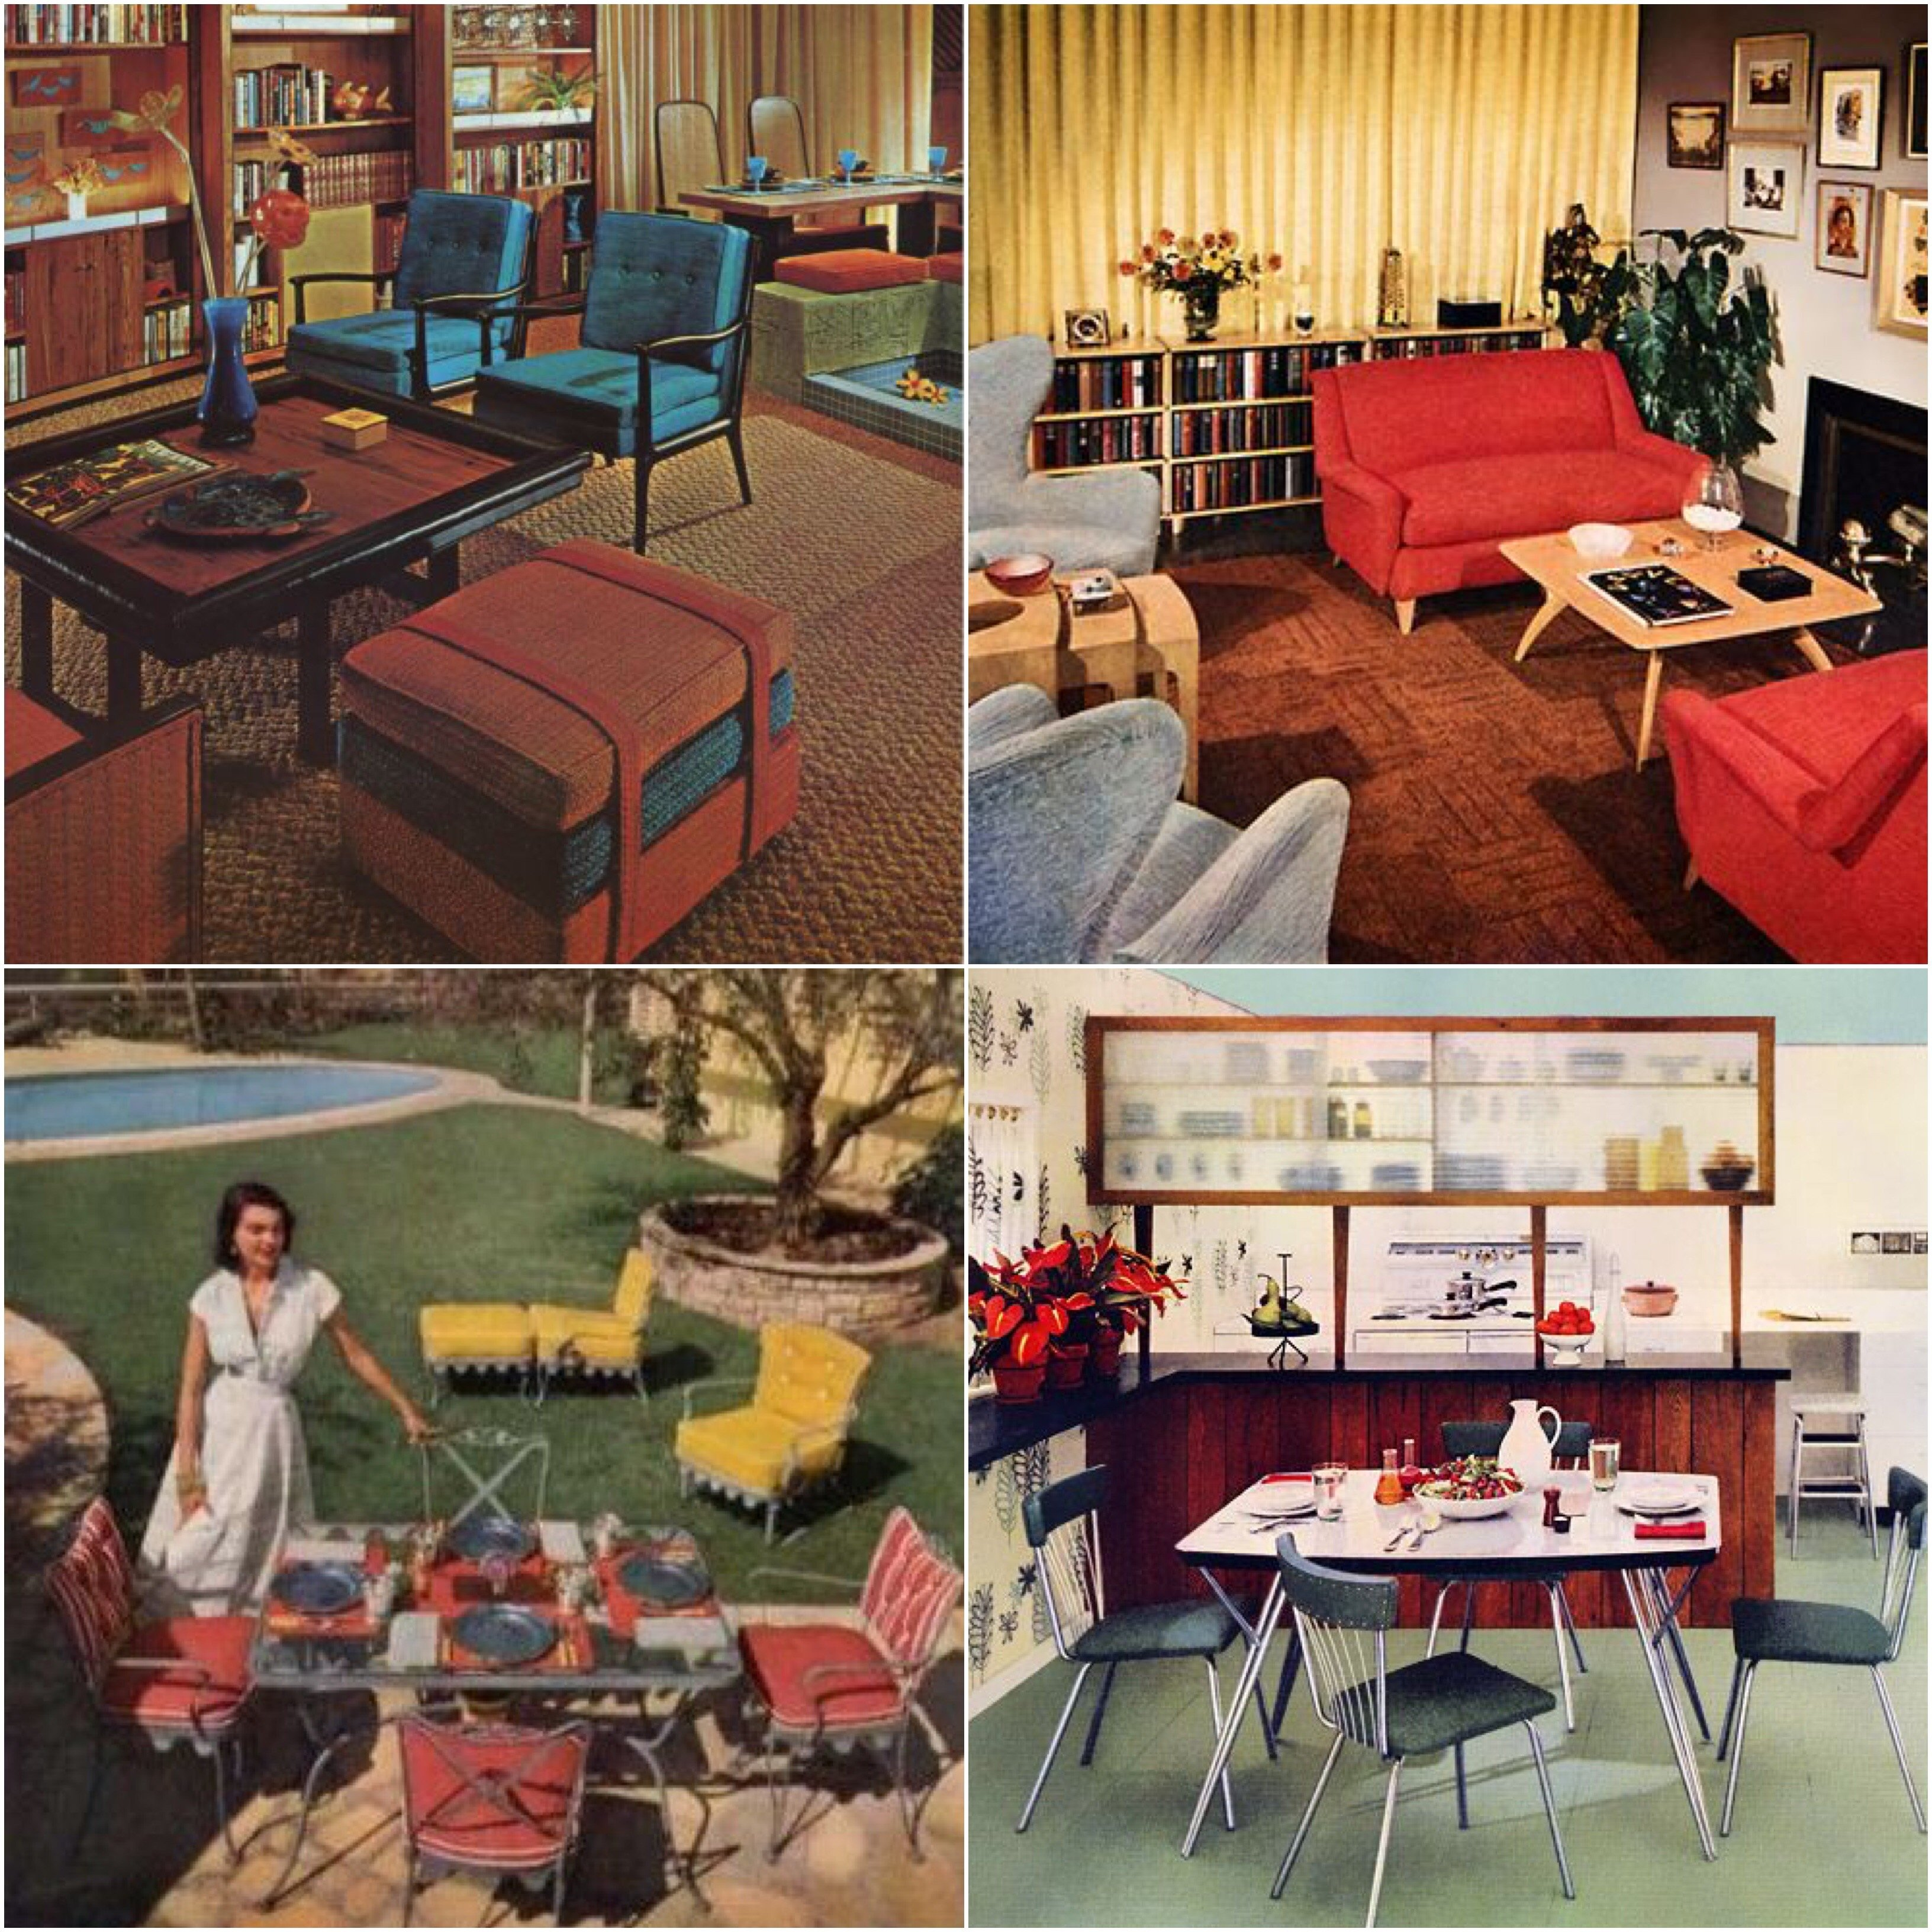 Furniture Of The 1950s Varied, Ranging From Traditional Upholstered  Furniture To Space Age, Futuristic Shaped Pieces. Vinyl Dining Chairs And  Chrome Legged ...